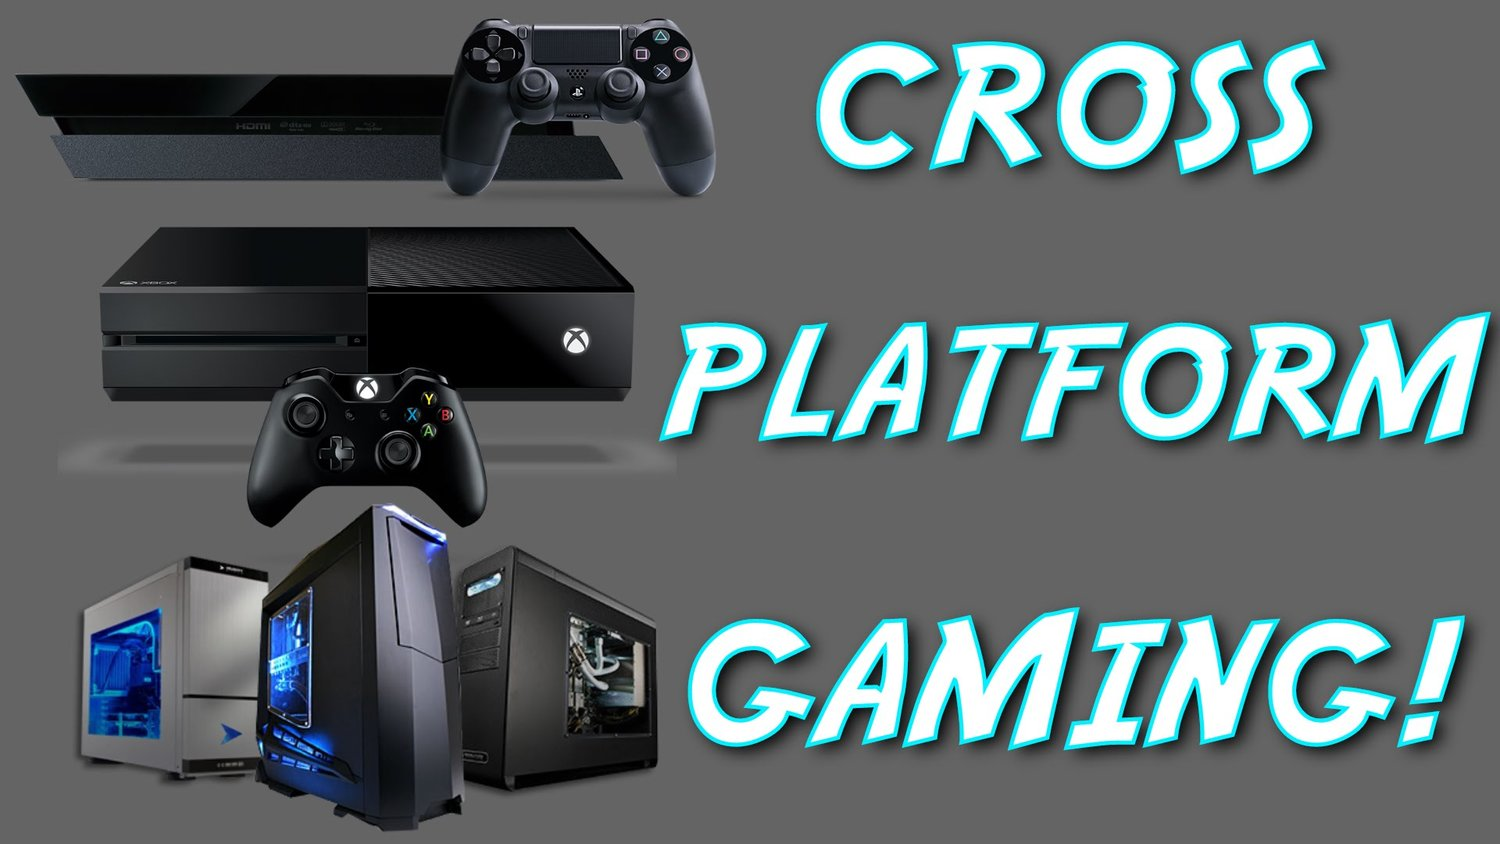 Cross Platform Gaming